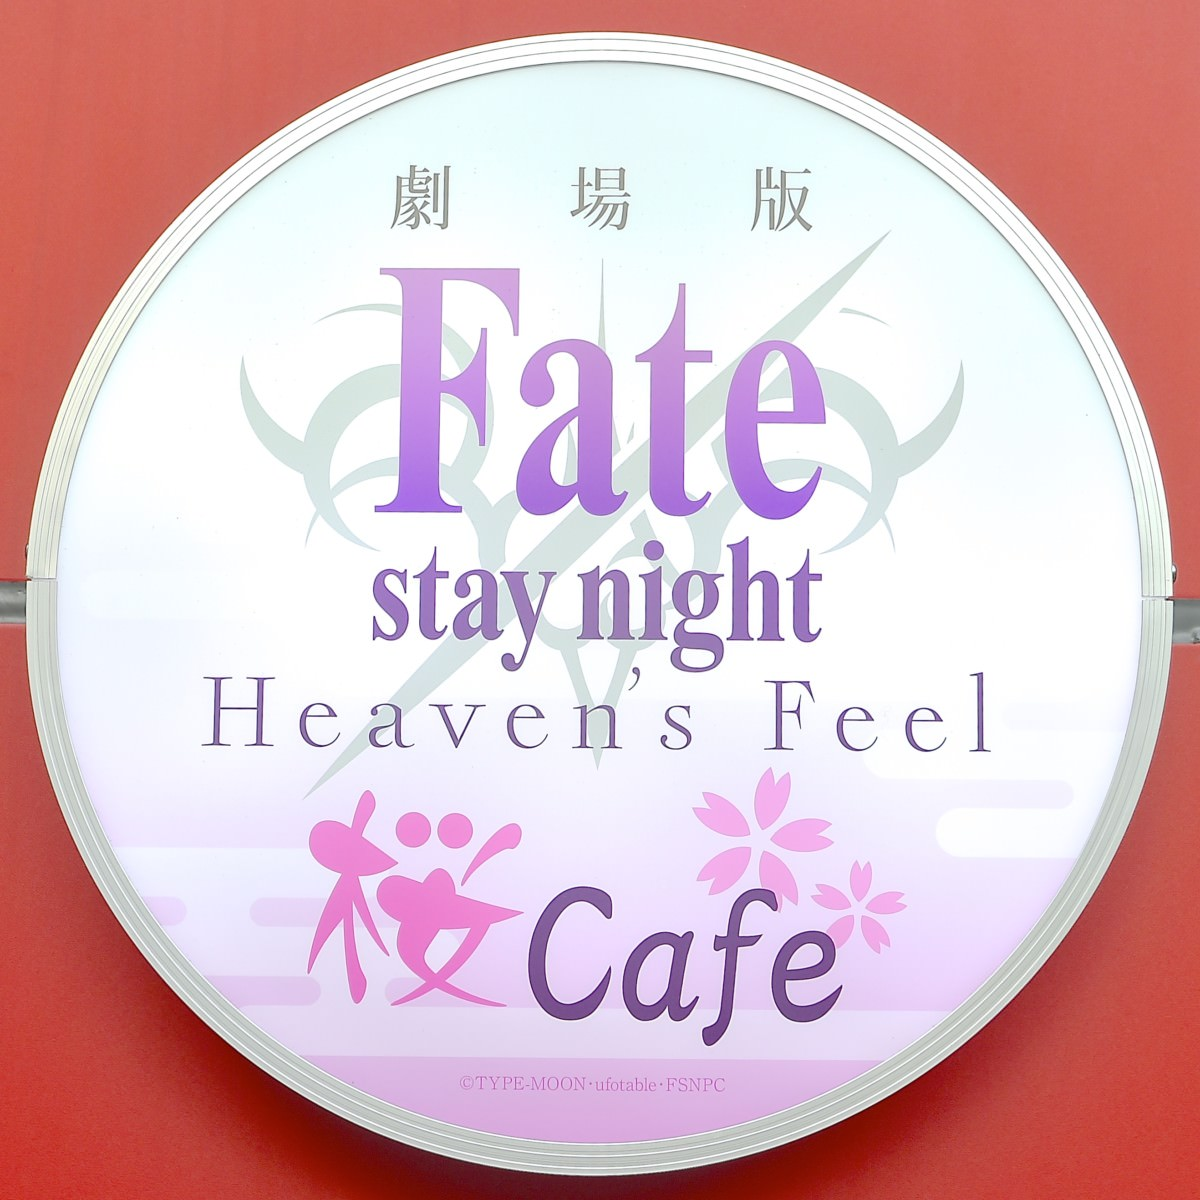 劇場版 「Fate/stay night [Heaven's Feel] 」桜cafe 看板